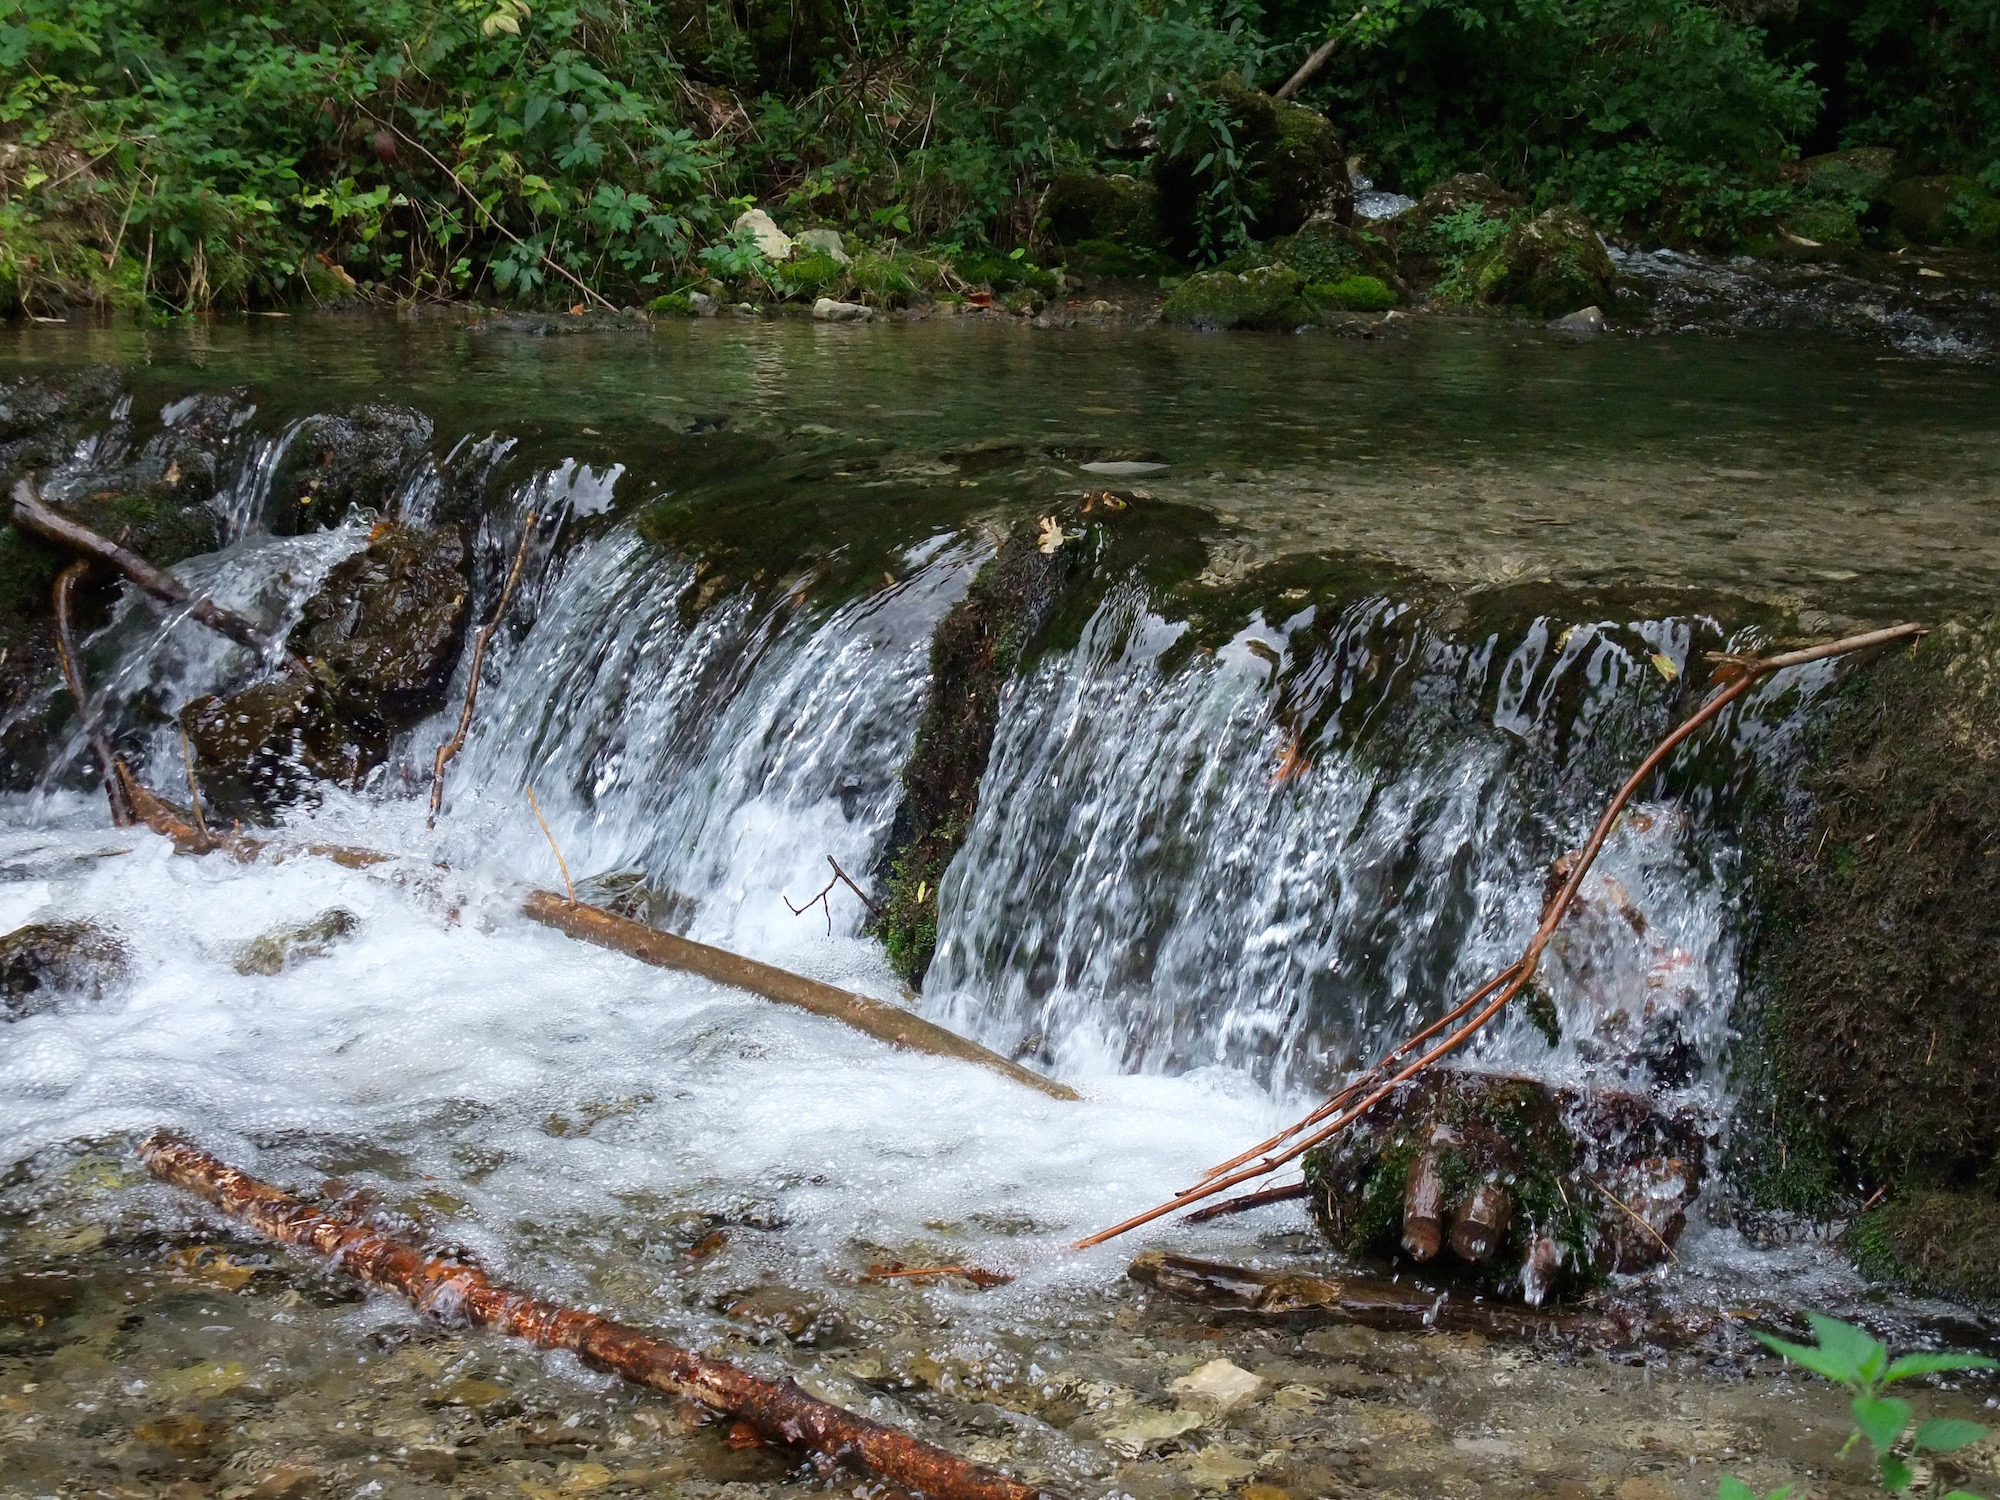 The mountain spring that feeds the trout farm